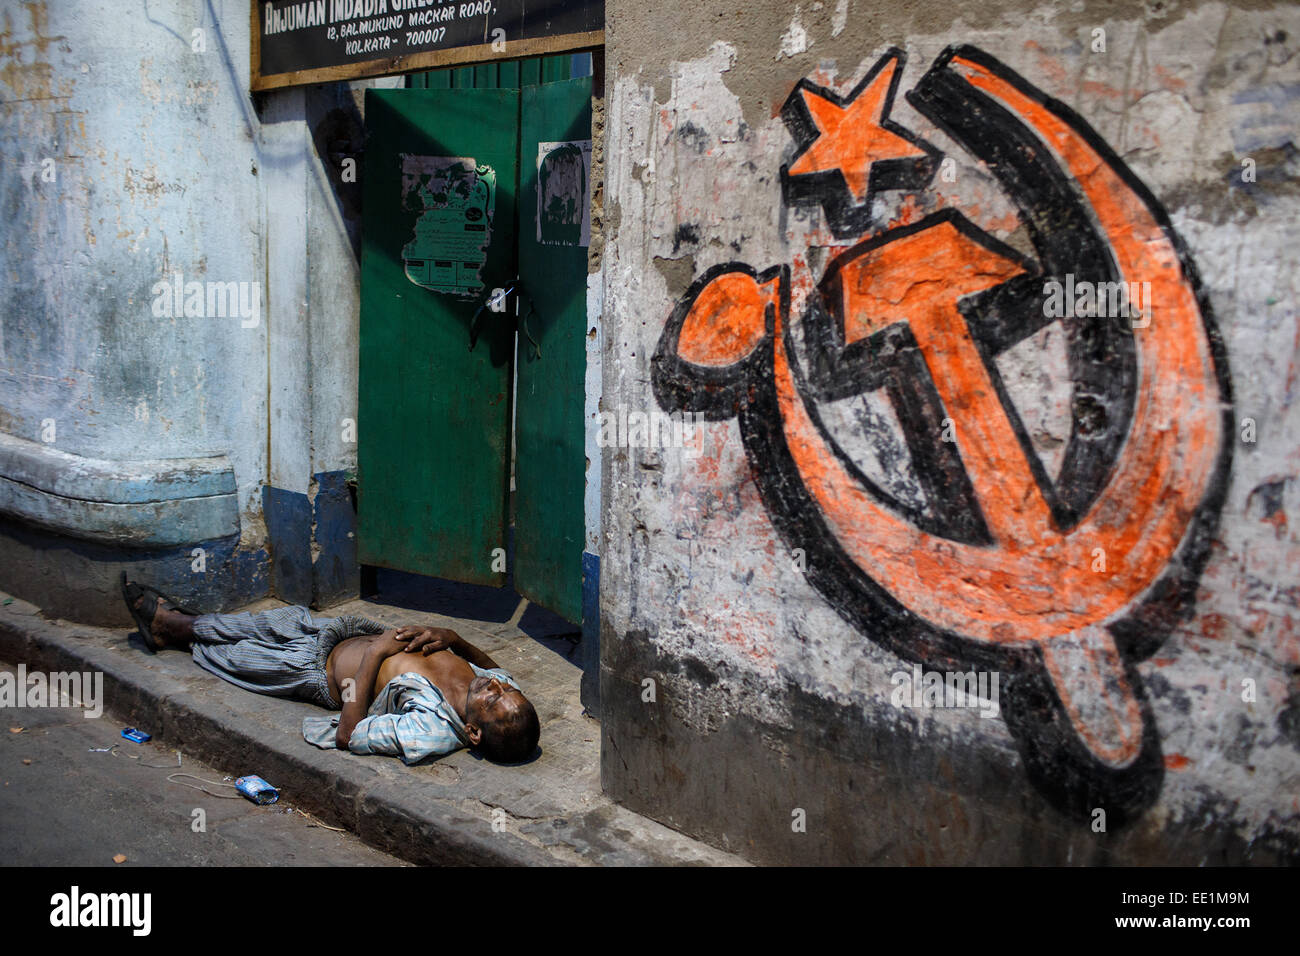 A person sleeps under a Communist Party symbol in dark alley of Kolkata, India - Stock Image